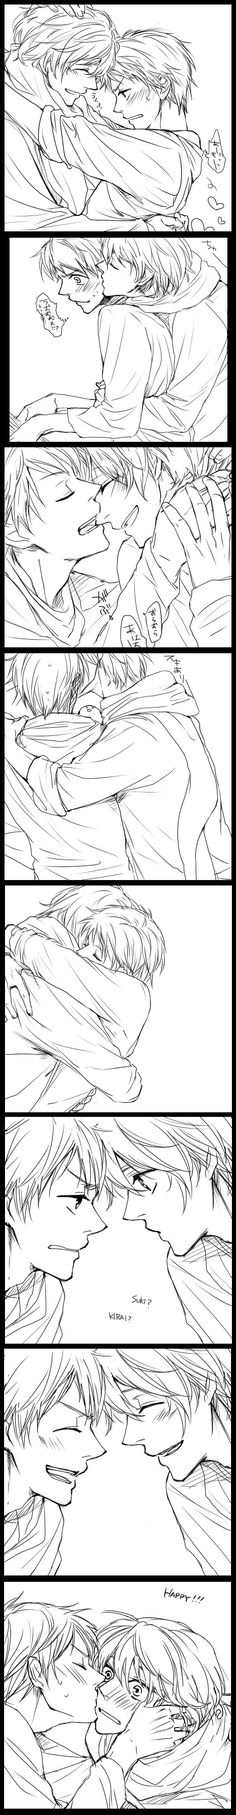 Aaaawww i don't ship this (RusPru) BUT THEY BOTG DESERVE LOVE SO I WILL REPOST IT >A<